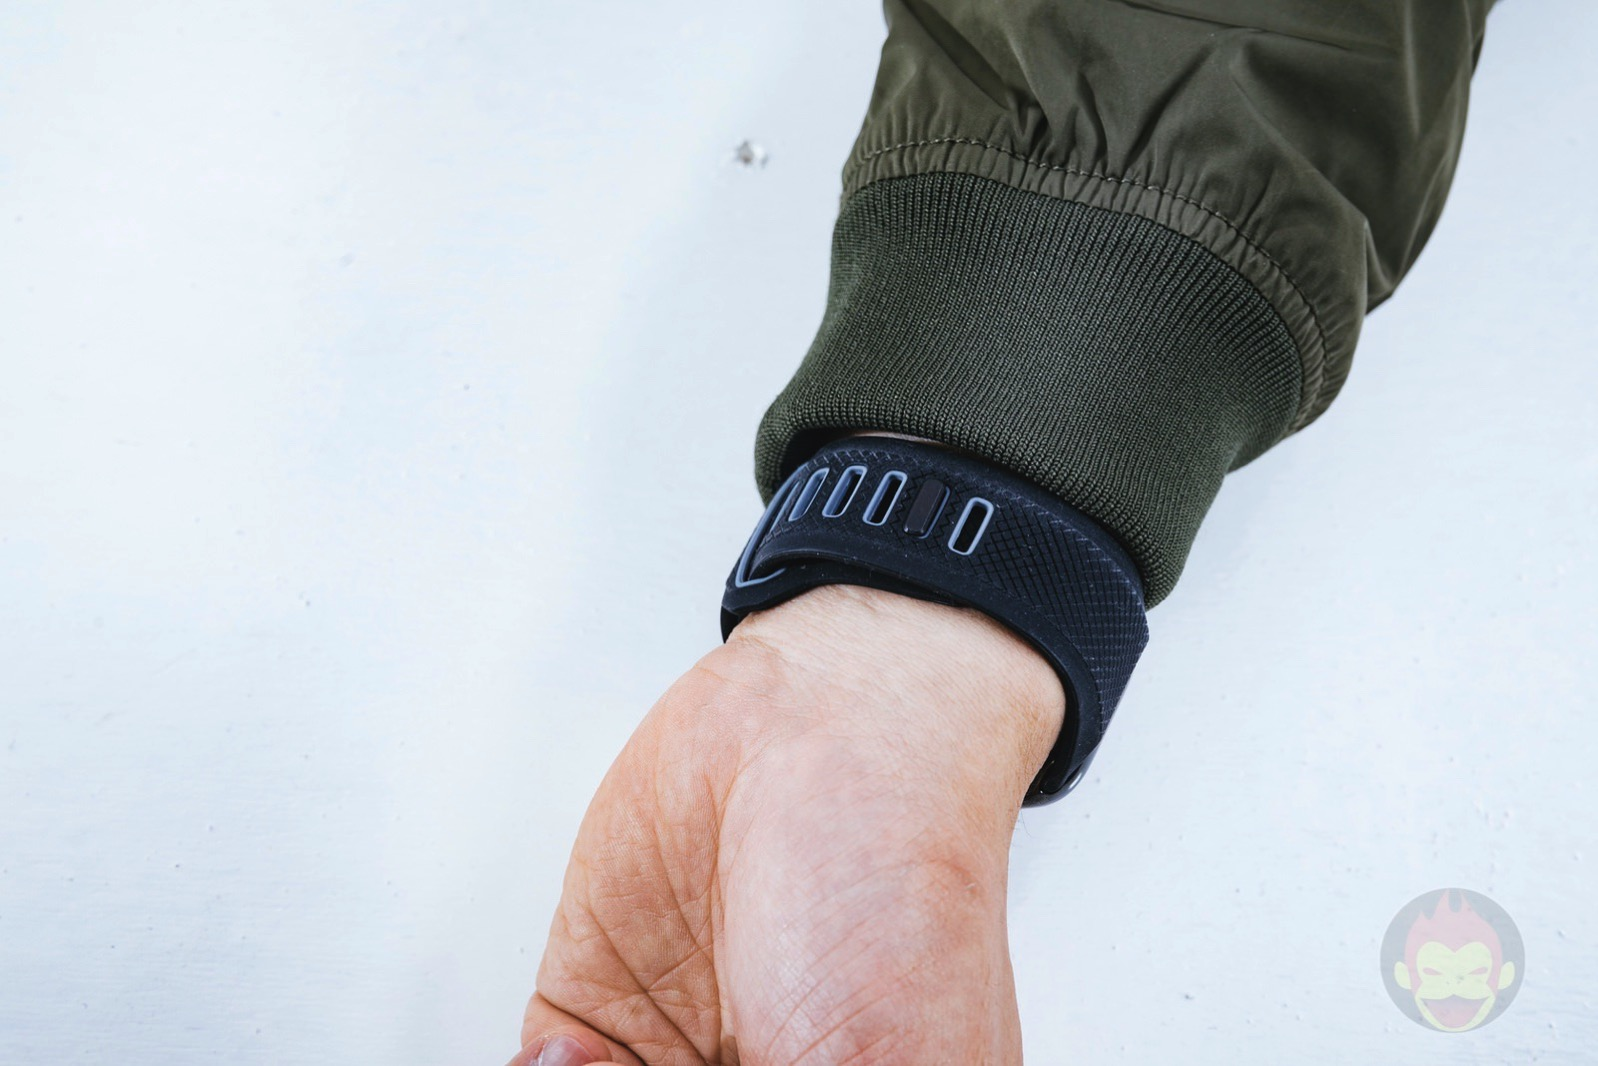 NOMAD-Sport-Strap-Review-03.jpg